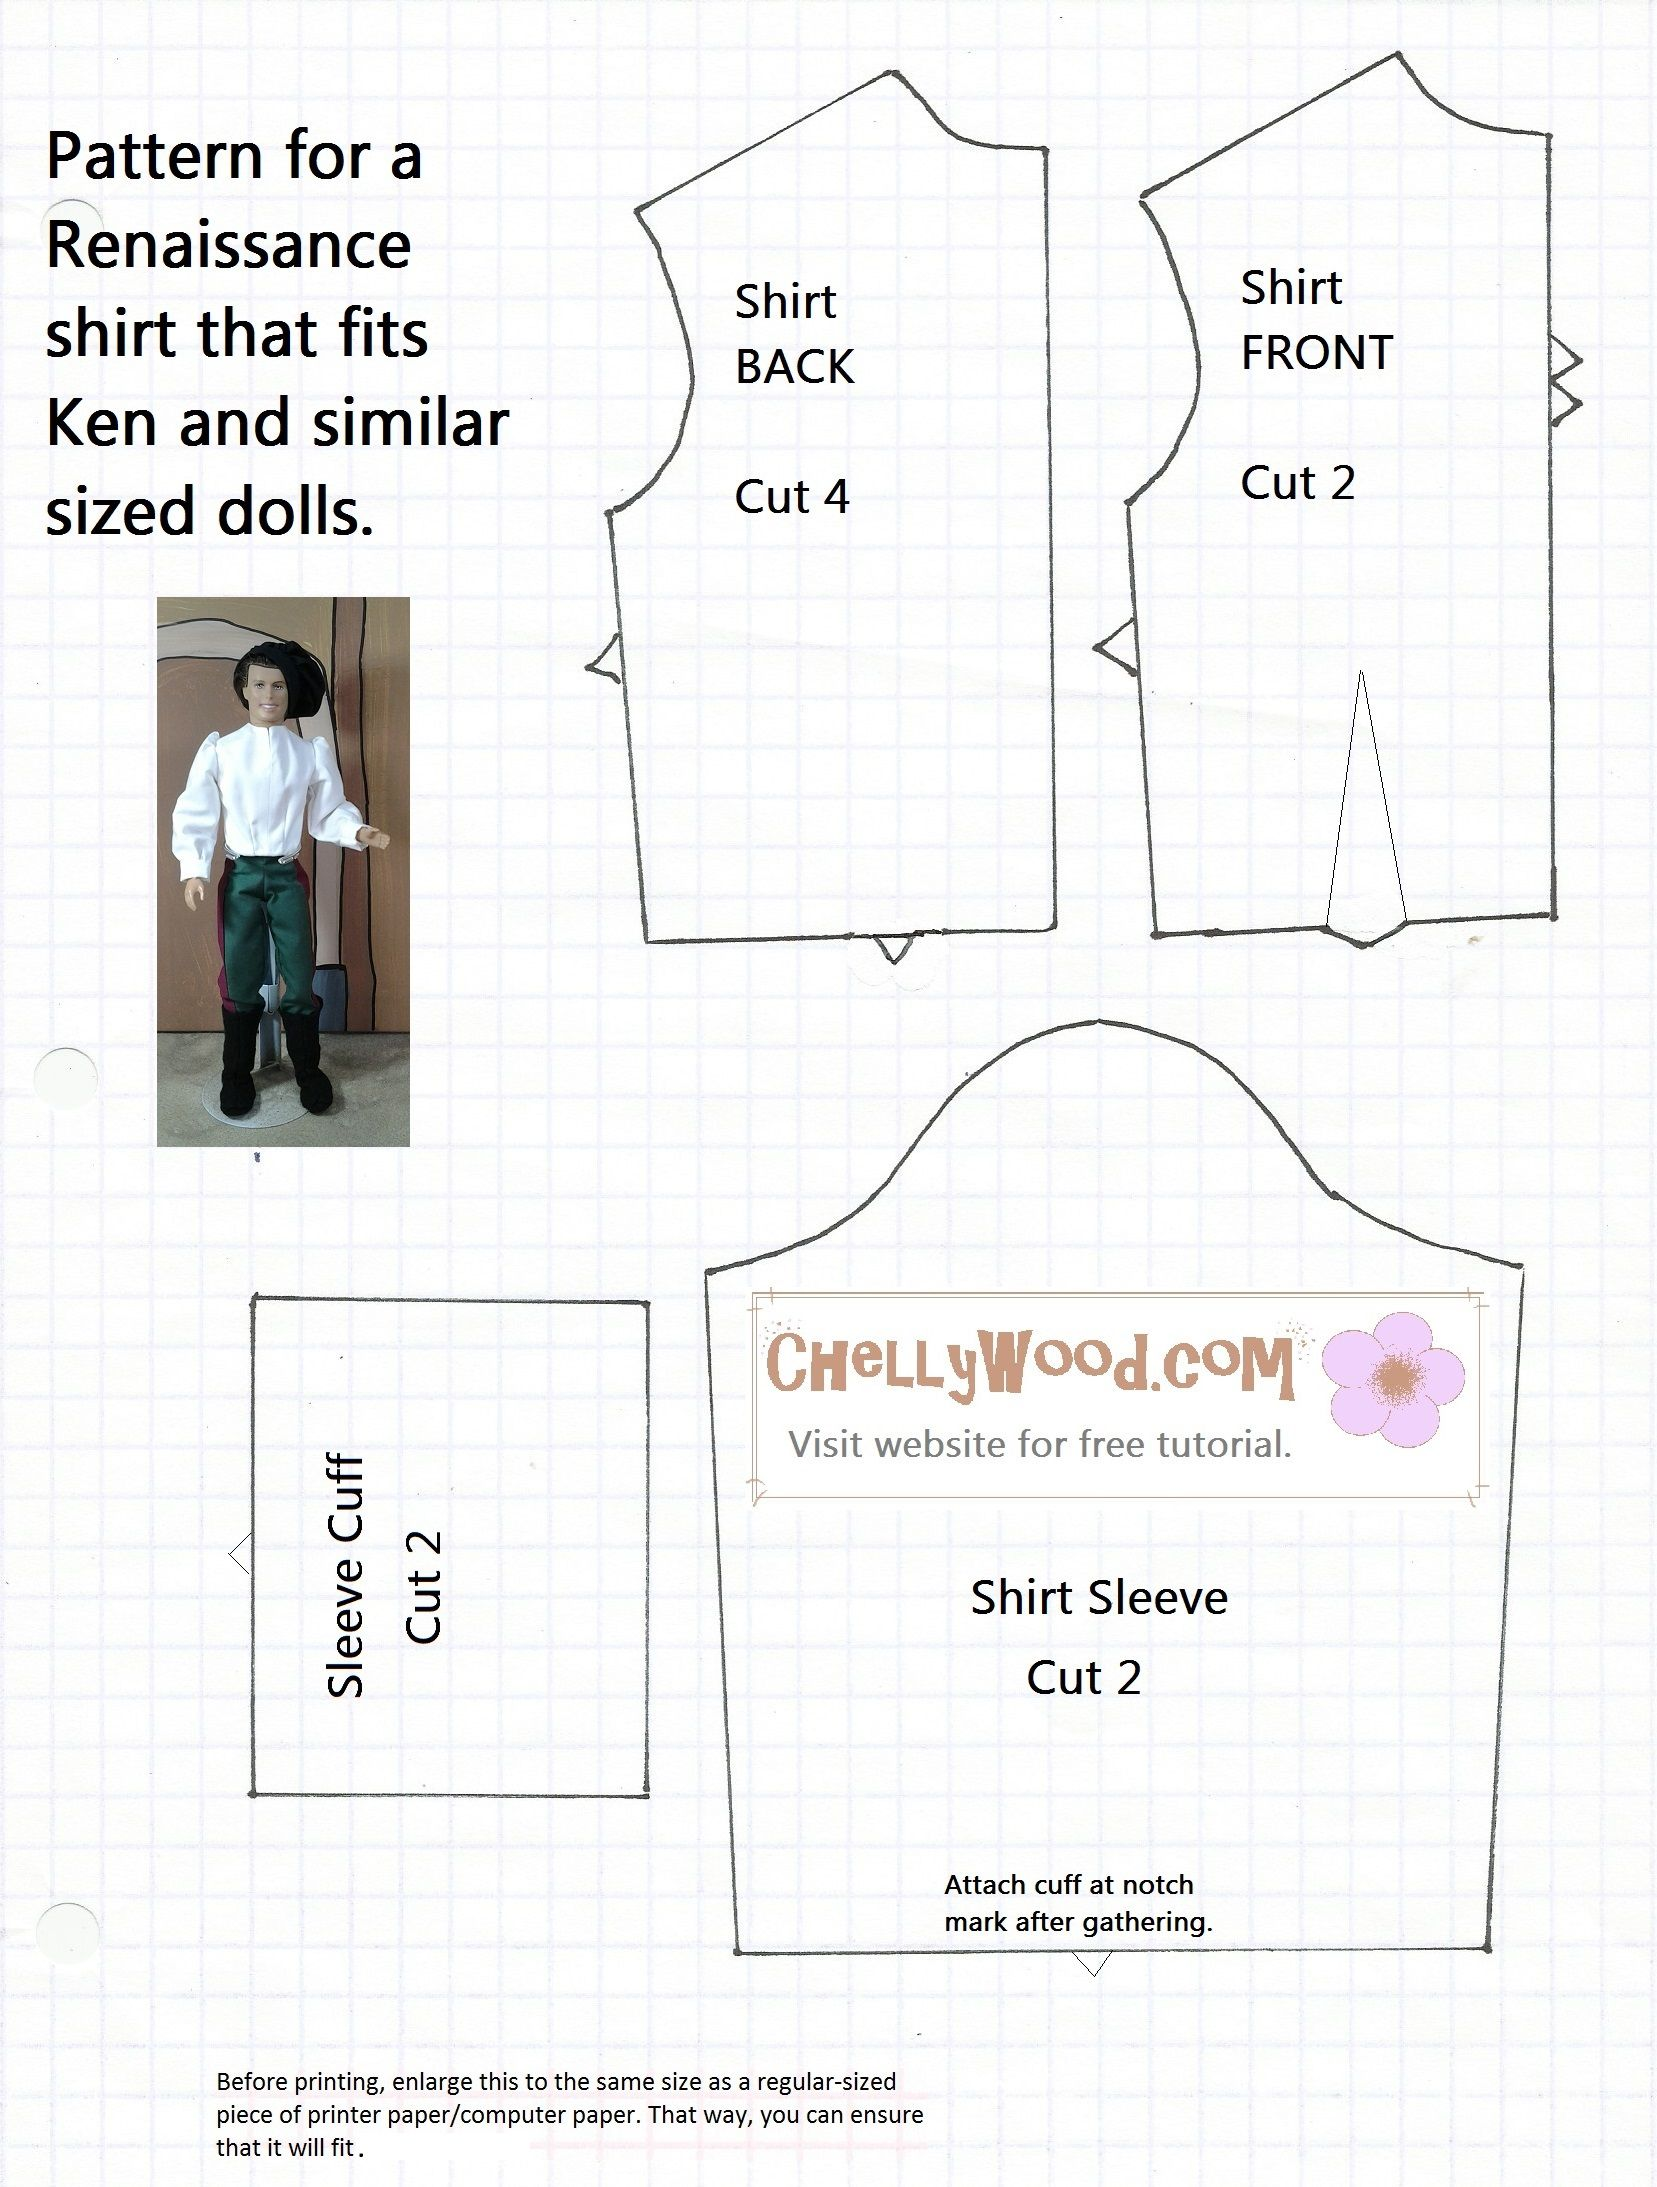 Pin by Chelly on Ken Clothes Patterns Printable & Free ...